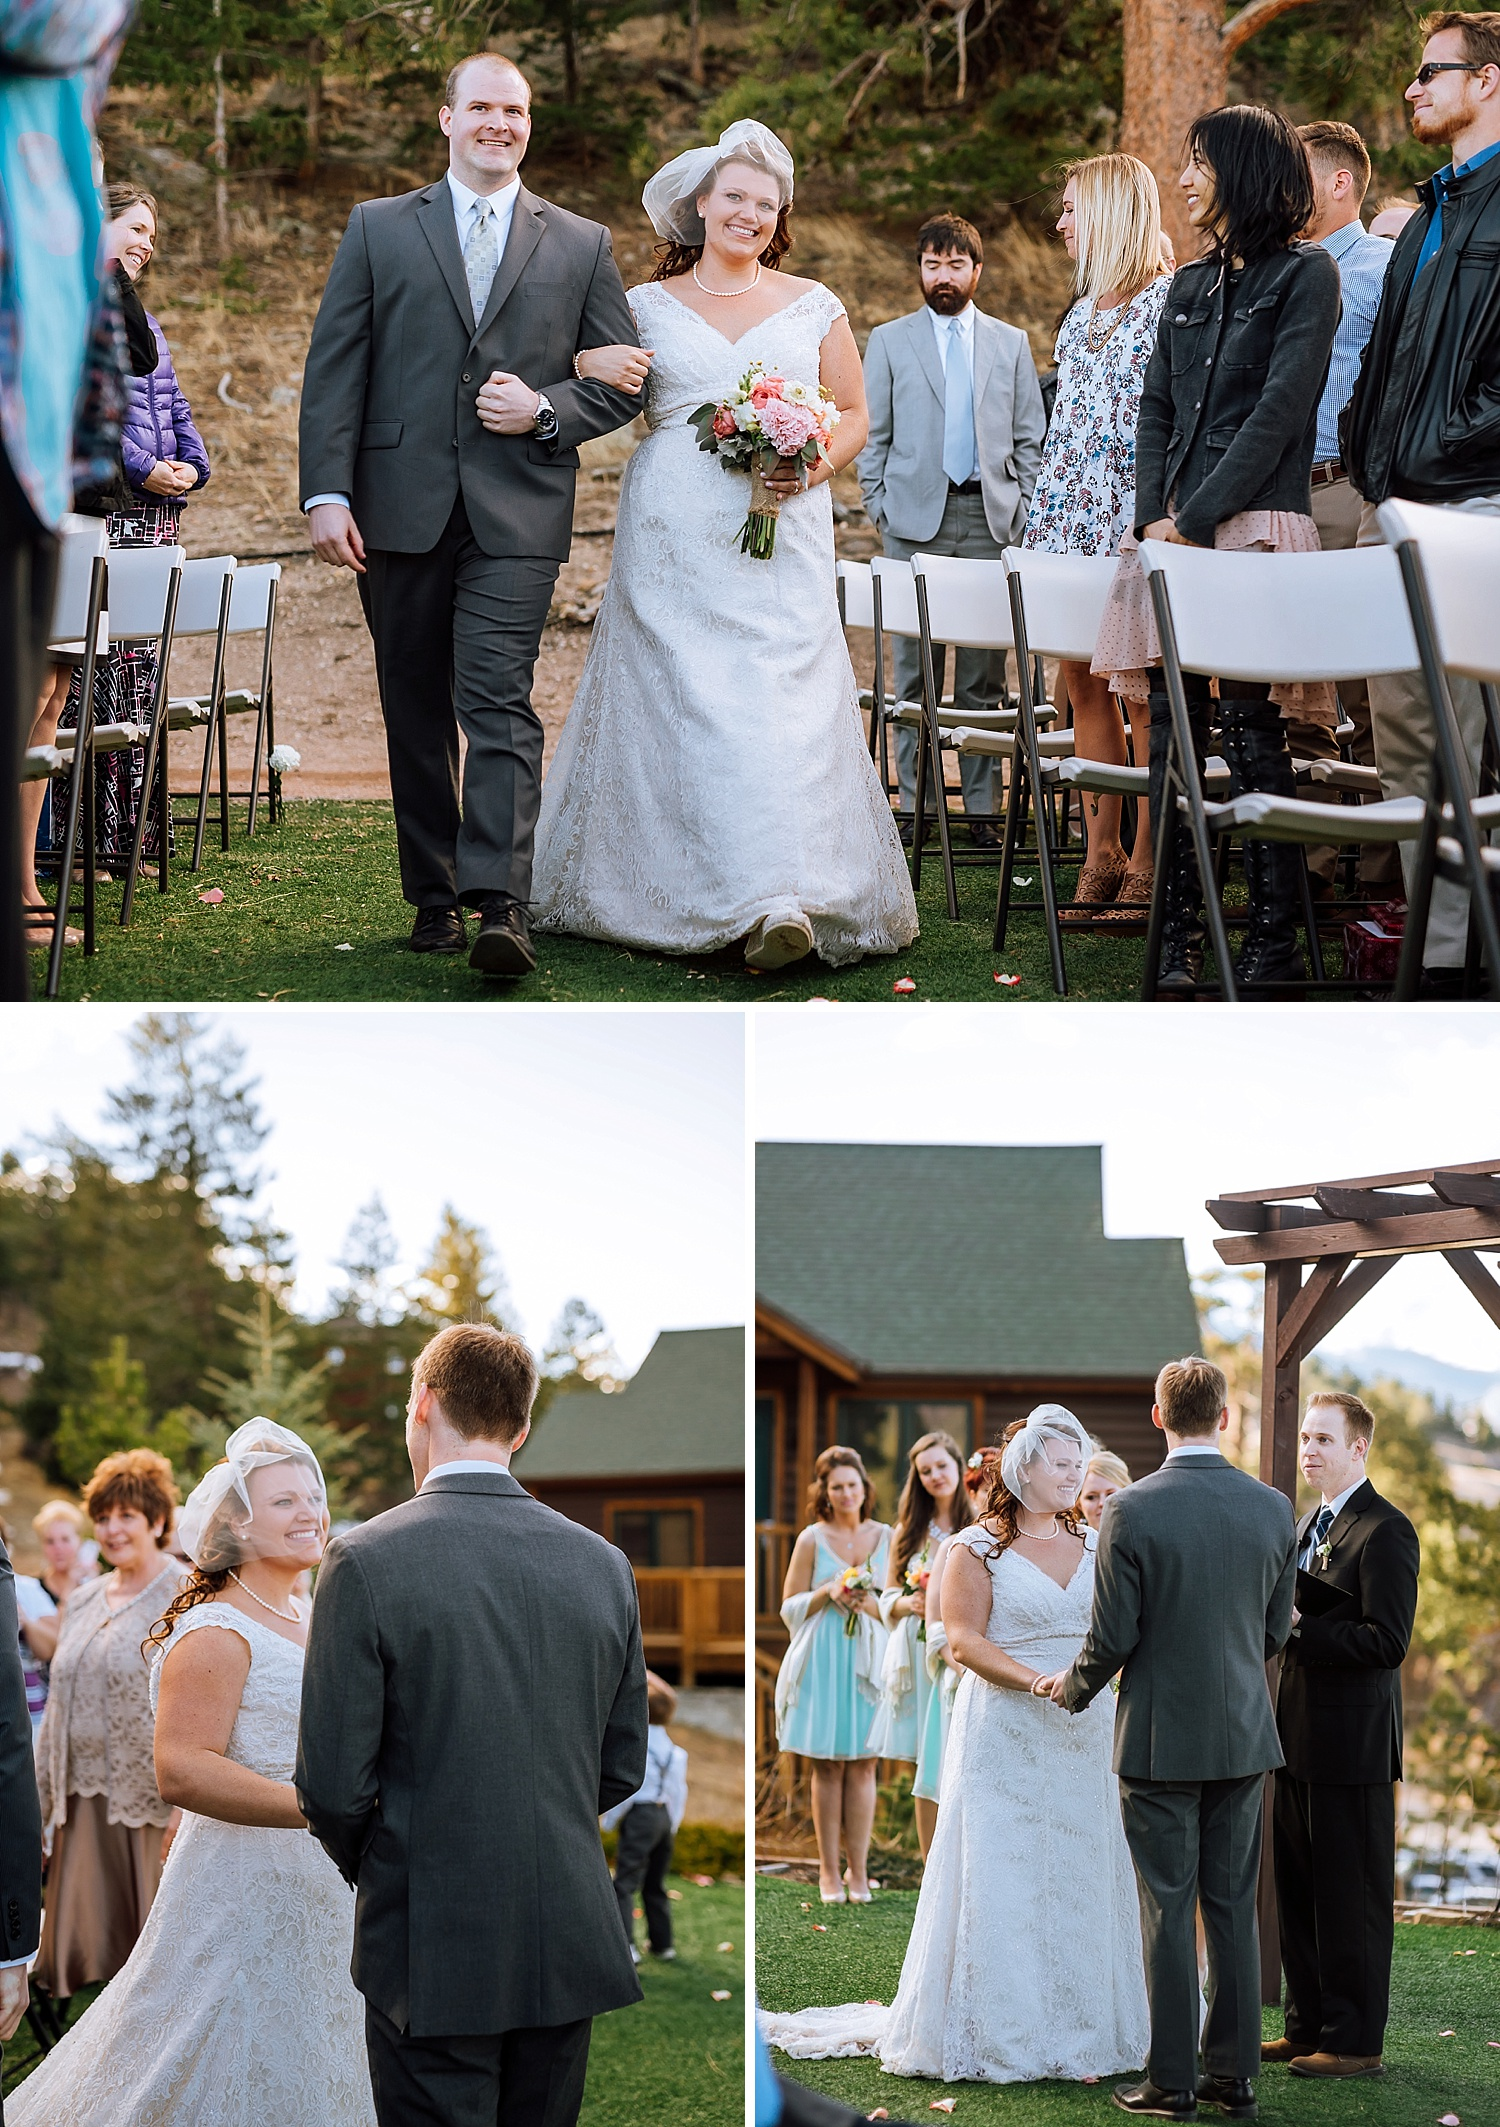 Mary's Lake Lodge in Estes Park is an amazing wedding venue up in Estes Park! I would love to be surrounded by those mountains during my wedding!Photo by Maddie Mae Photography